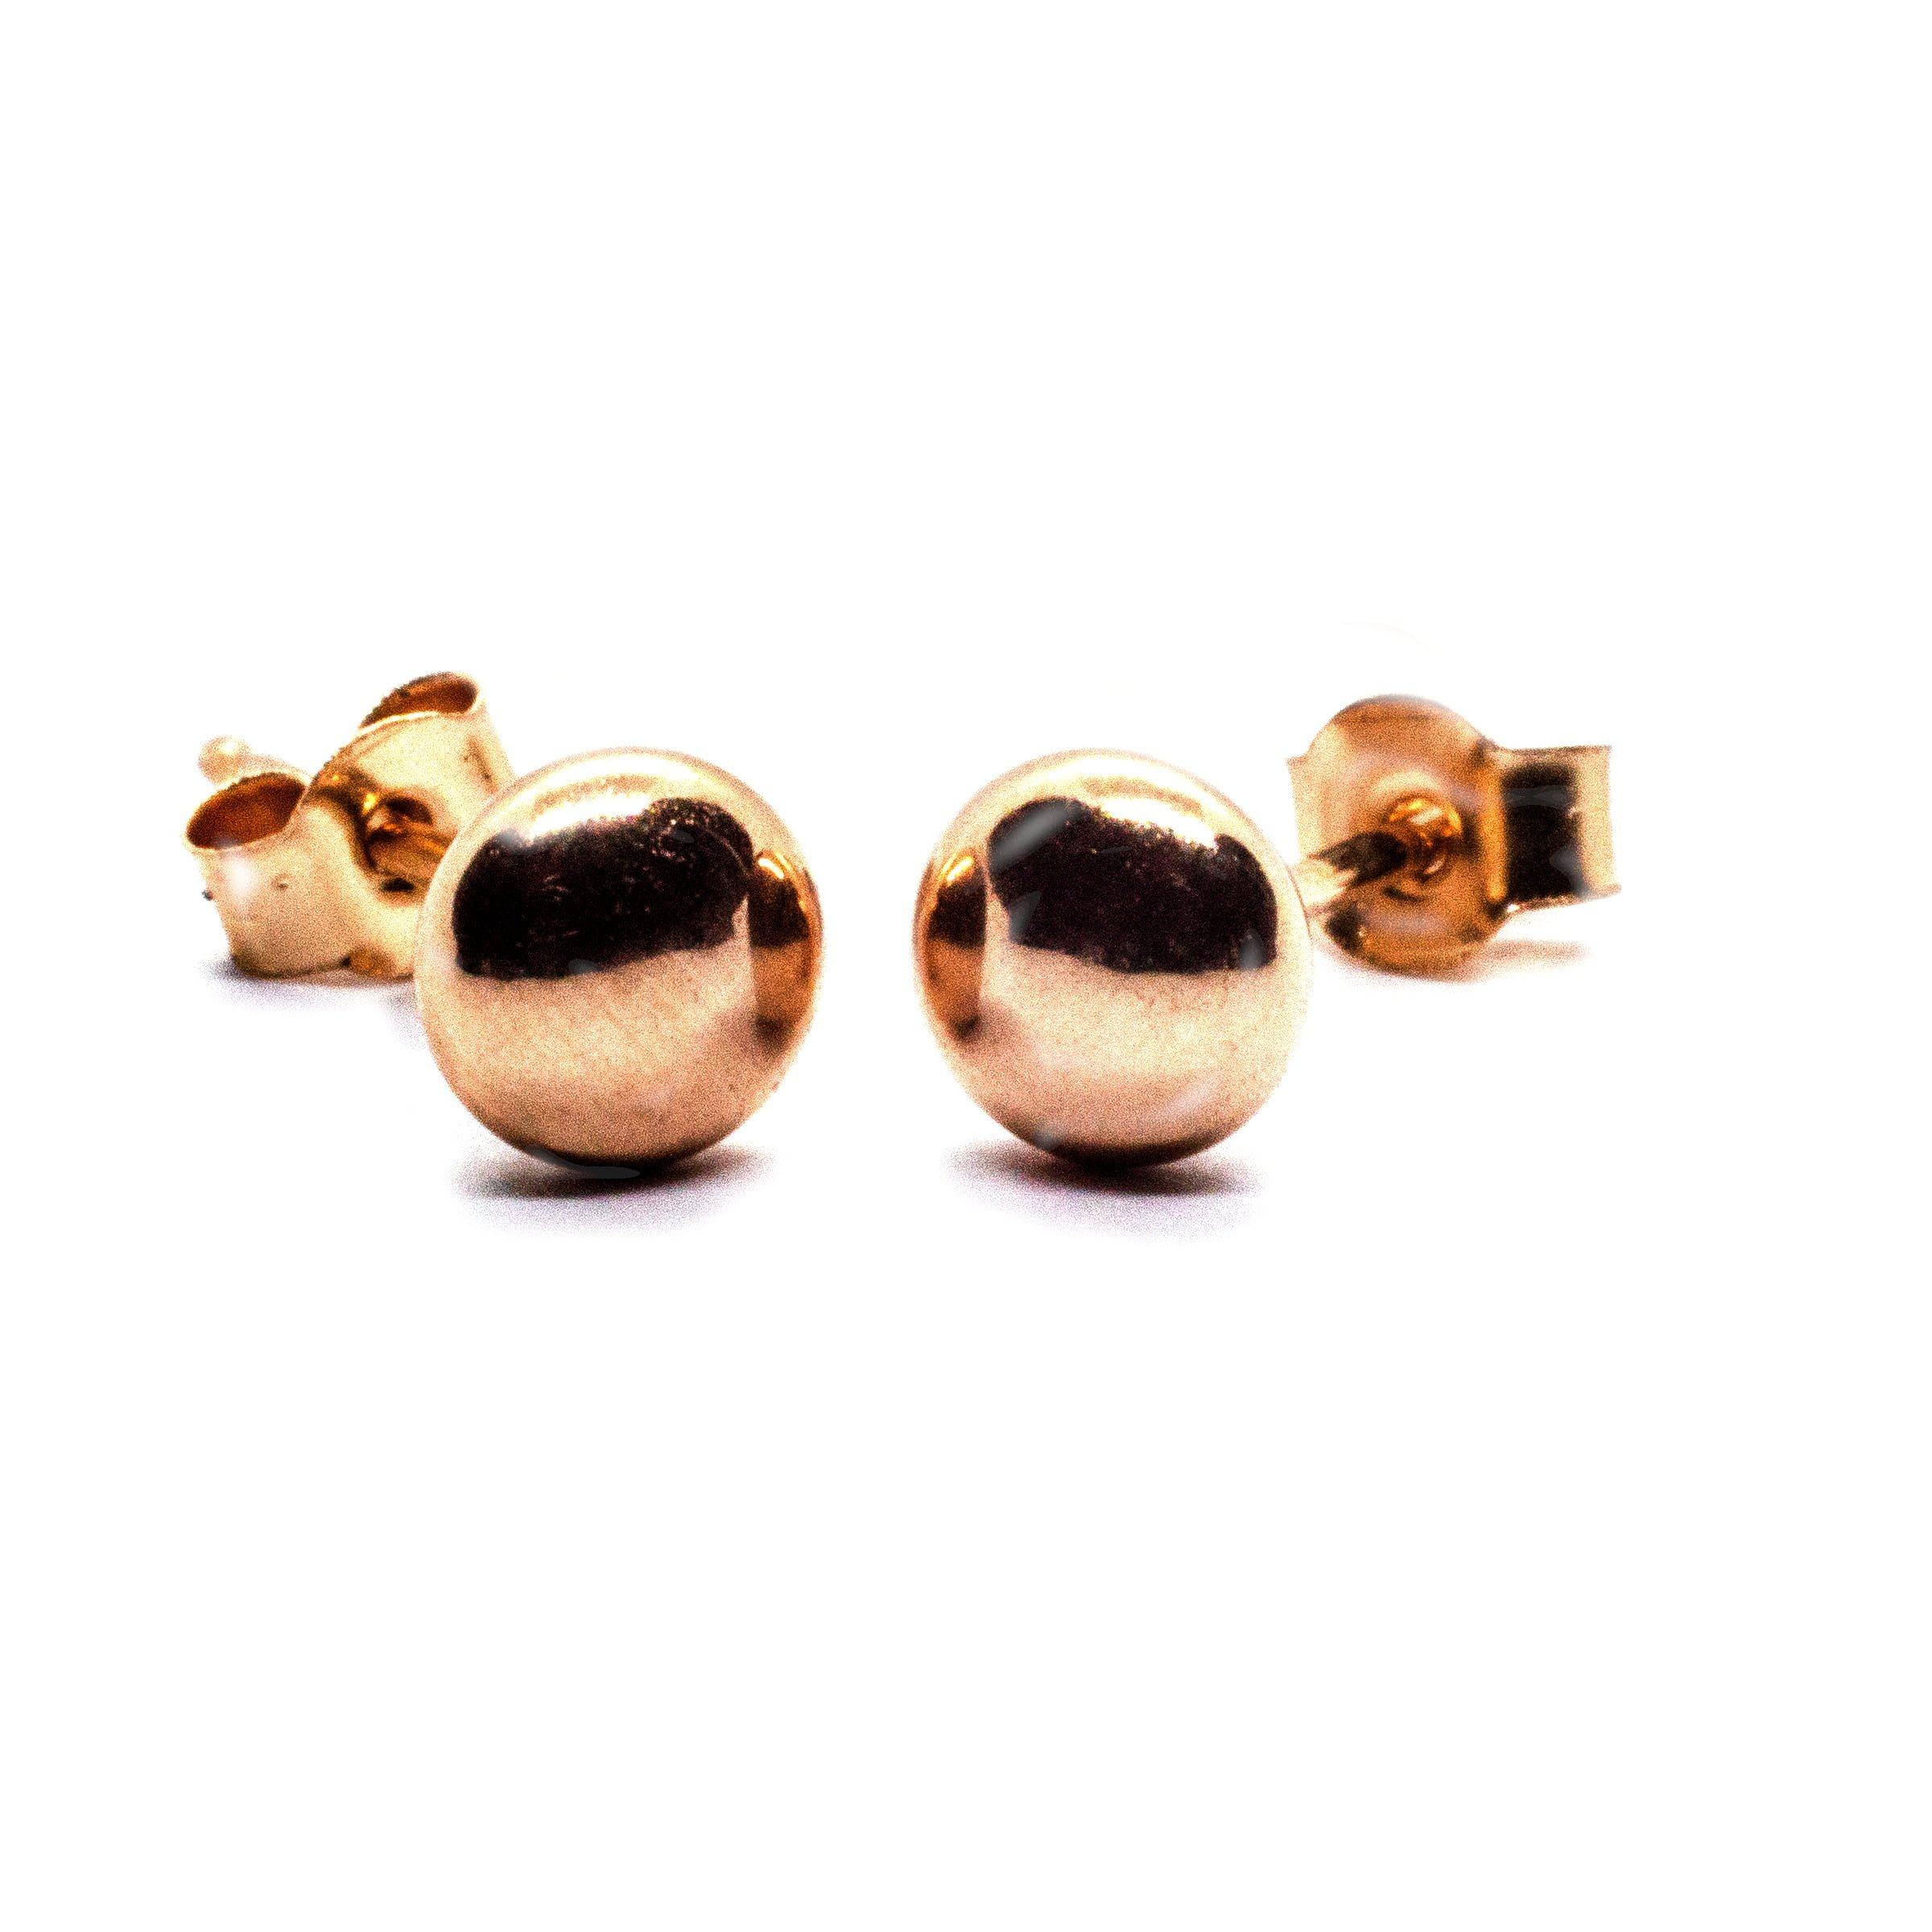 4mm 9ct gold bouton earrings